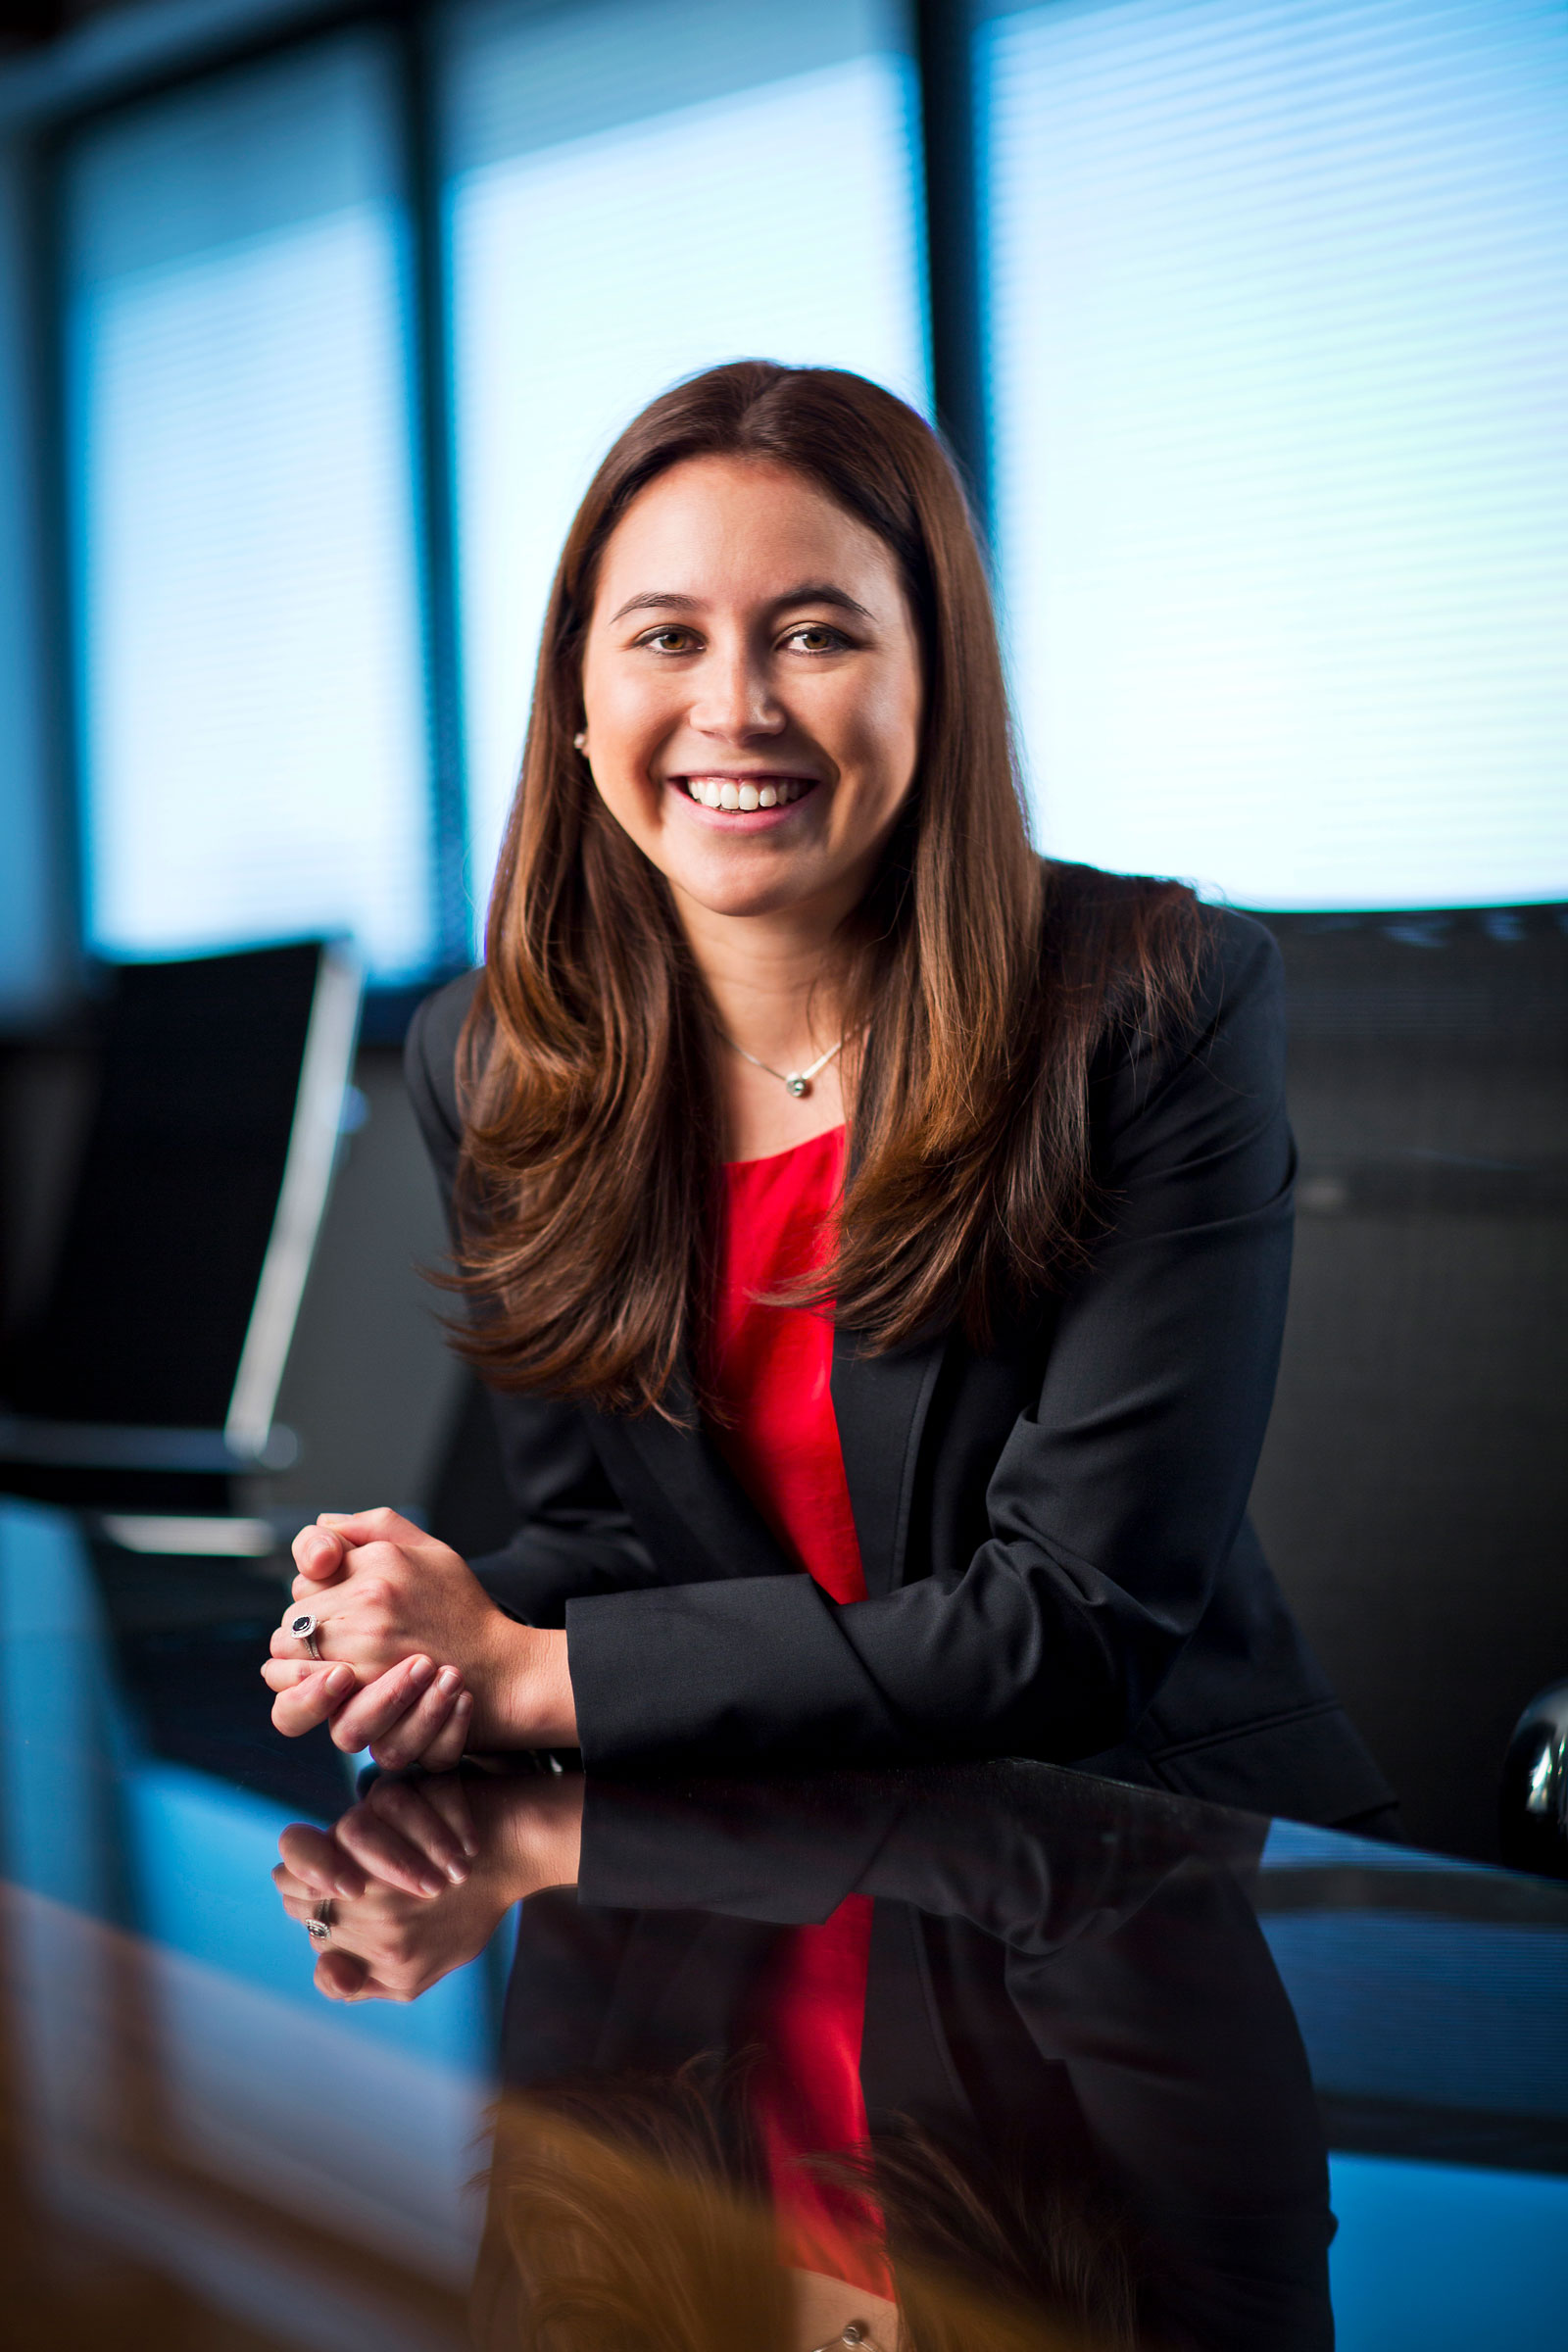 Corporate location lawyer photography Harmers Lawyers female smiling seated boardroom